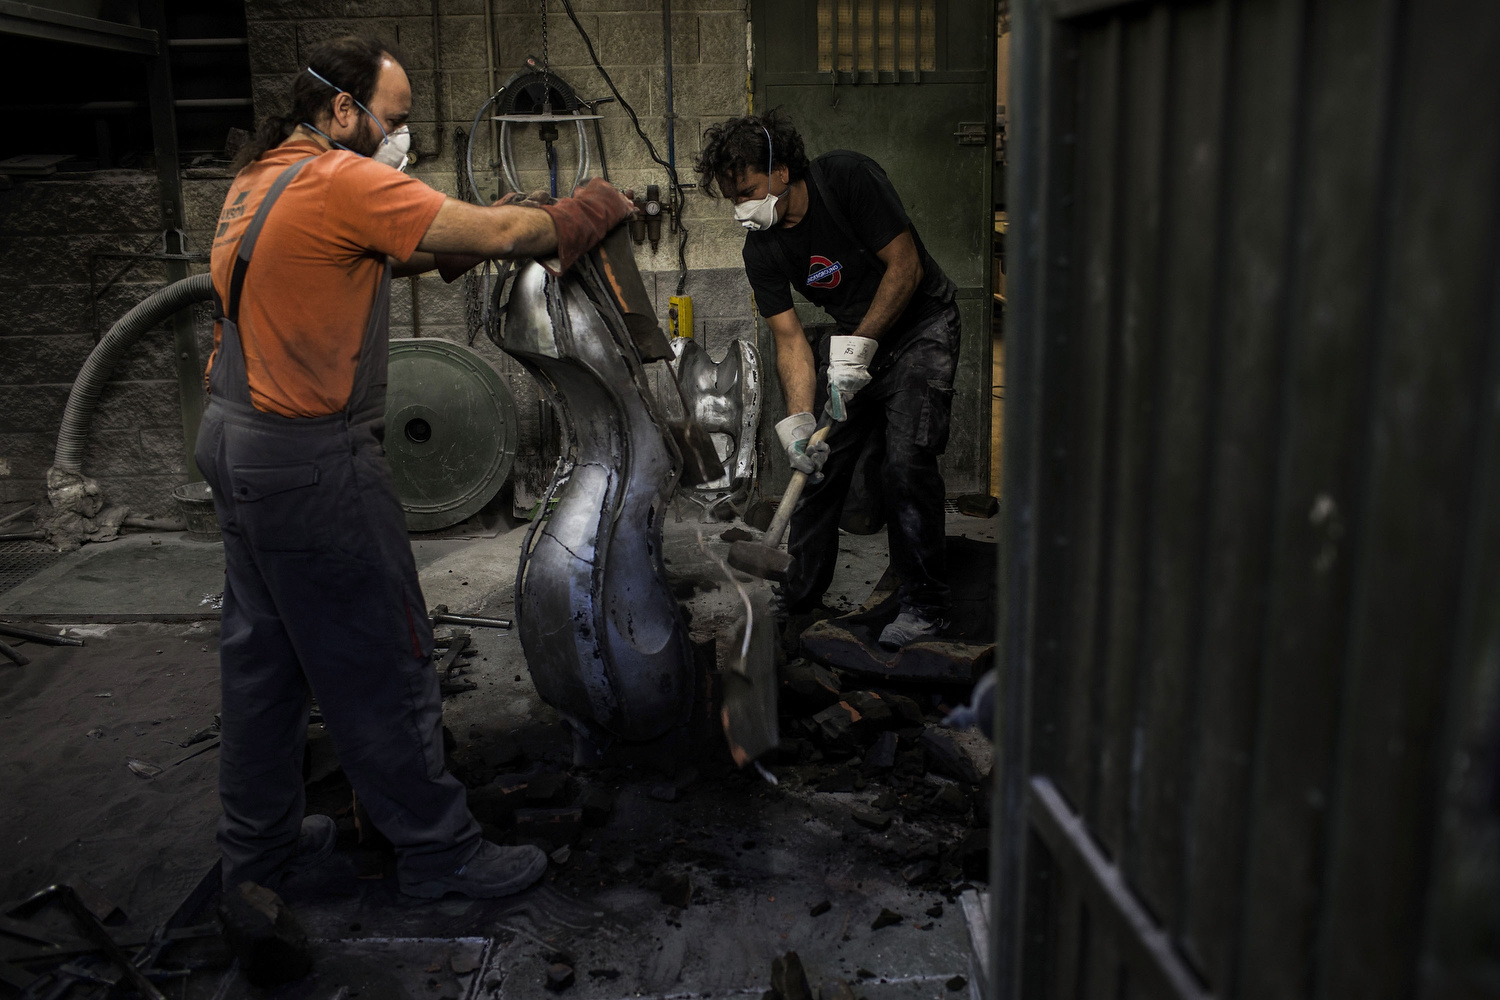 Brothers  Carlos  (R) and  Pablo Delgado  (L) break the  silica-sand mould  that contains the  recycled steel bodywork  of a  customized BMW R Ninet   motorcycle  at Valtorón's  foundry  on July, 30, 2014 in Valdetorres del Jarama, Spain. Carlos and Pablo Delgado are  cast  sculptors who invest part of their time as  Valtorón Sculptured Motorcycles . On their foundry they desing and bring to life motorbike's bodyworks and tanks handmade by steel pieces recycled from scrapped motorcycles. On 2014, BMW lent them one of their  NineT motorbikes  and the freedom of doing their own customization. The result was showcasted at Formigal's Motorrad Days festival and 2014 Colonia Venue. Cast sculptors, a community trader and a musician have something in common: they have made the passion of customizing motorbikes their own business. Valtoron Sculptured Motorcycles, Café Racer Obsession and El Solitario Motorcycles are the dreams-come-true of the Delgado Brothers, Federico Ruiz and David Borrás. Cast sculptors, a community trader and a musician have something in common: they have made the passion of customizing motorbikes their own business. Valtoron Sculptured Motorcycles, Café Racer Obsession and El Solitario Motorcycles are the dreams-come-true of the Delgado Brothers, Federico Ruiz and David Borrás.